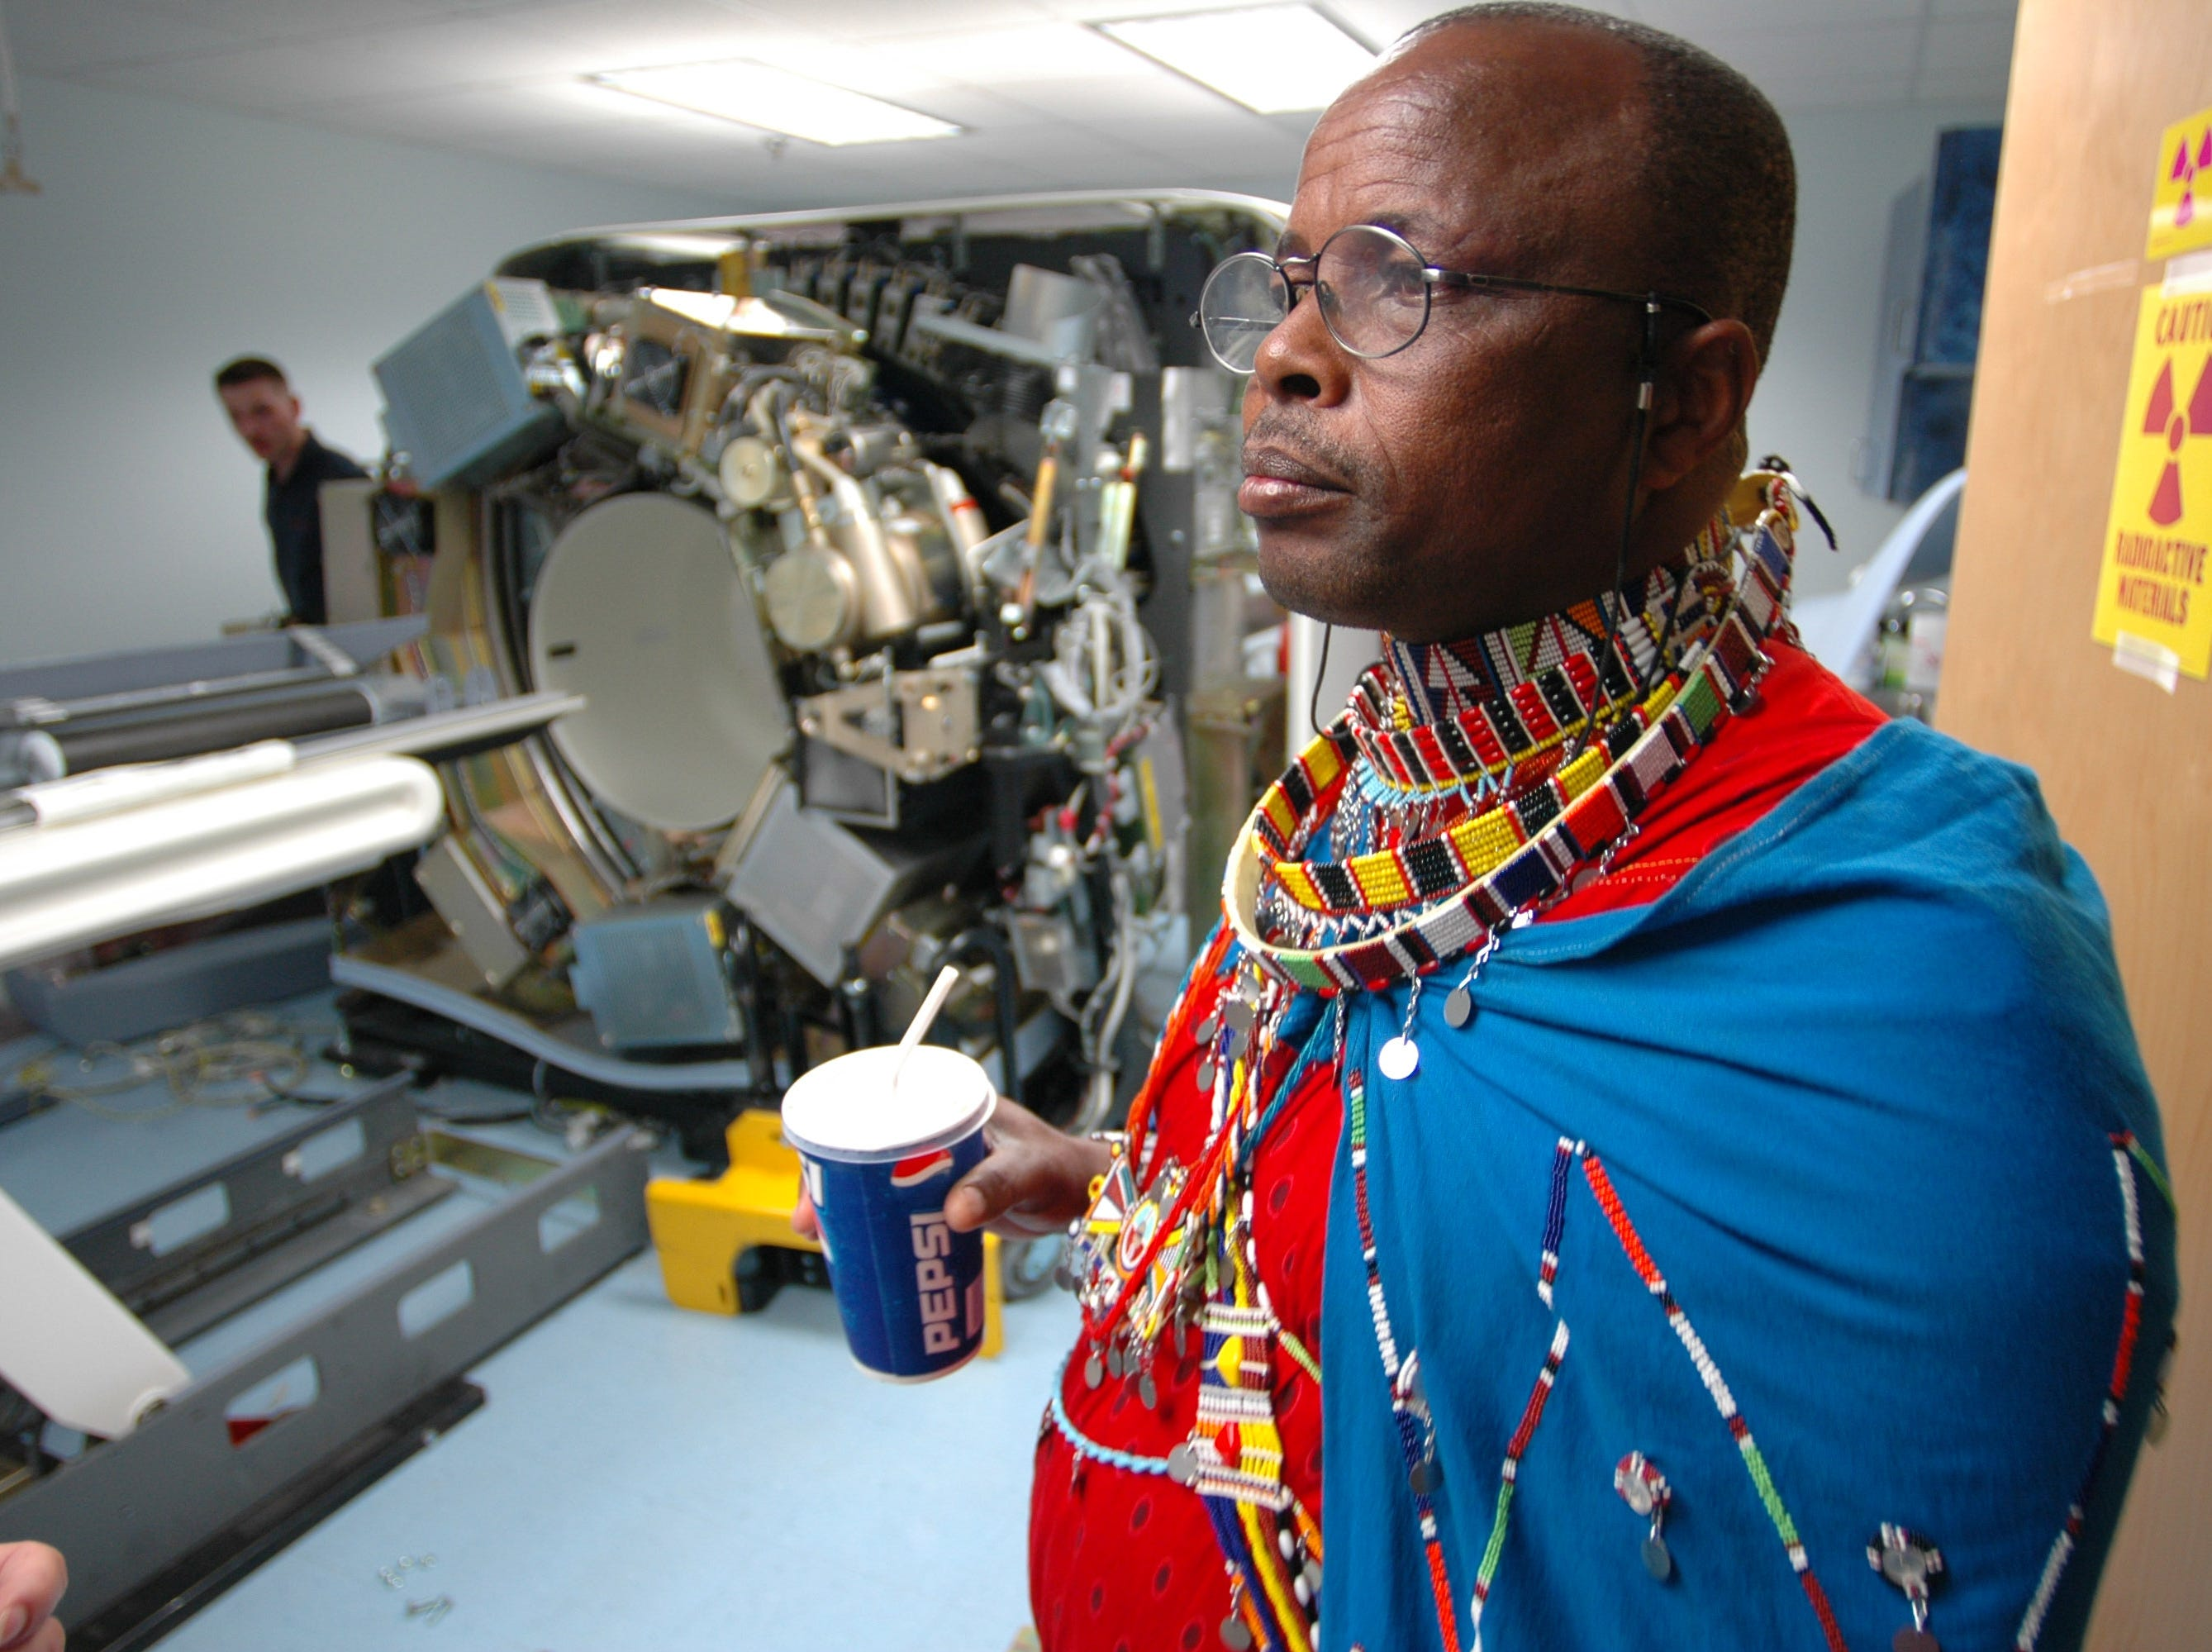 Dressed in his traditional clothing, Josiah Muesha, a member of the Maasai community in Kenya, checks out a PET scan machine which is being serviced while drinking a pepsi on his tour of St. Mary's Hospital in North Knoxville Tuesday afternoon. Many of the colors that he wears are symbolic, including the band across his chest which signifies that he is a Maasai warrior. To become a warrior, one must go into the wilderness alone with a sword and a knife and not come back until they have killed a lion.0/18/2005